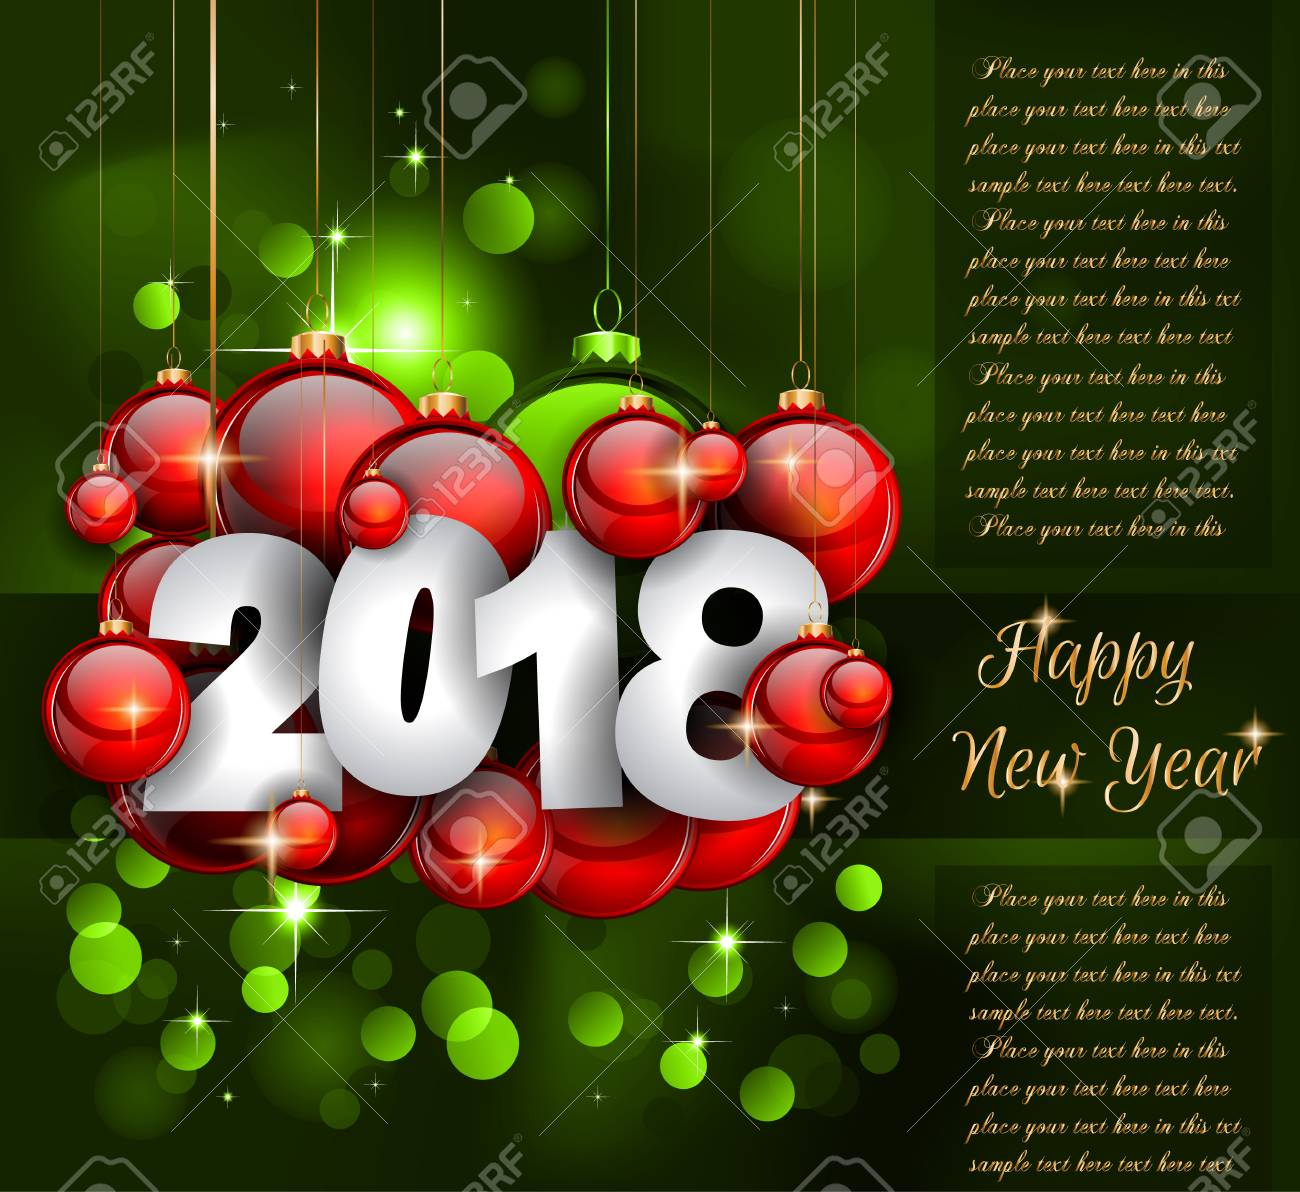 2018 Happy New Year Greetings Card Or Christmas Themed Invitations